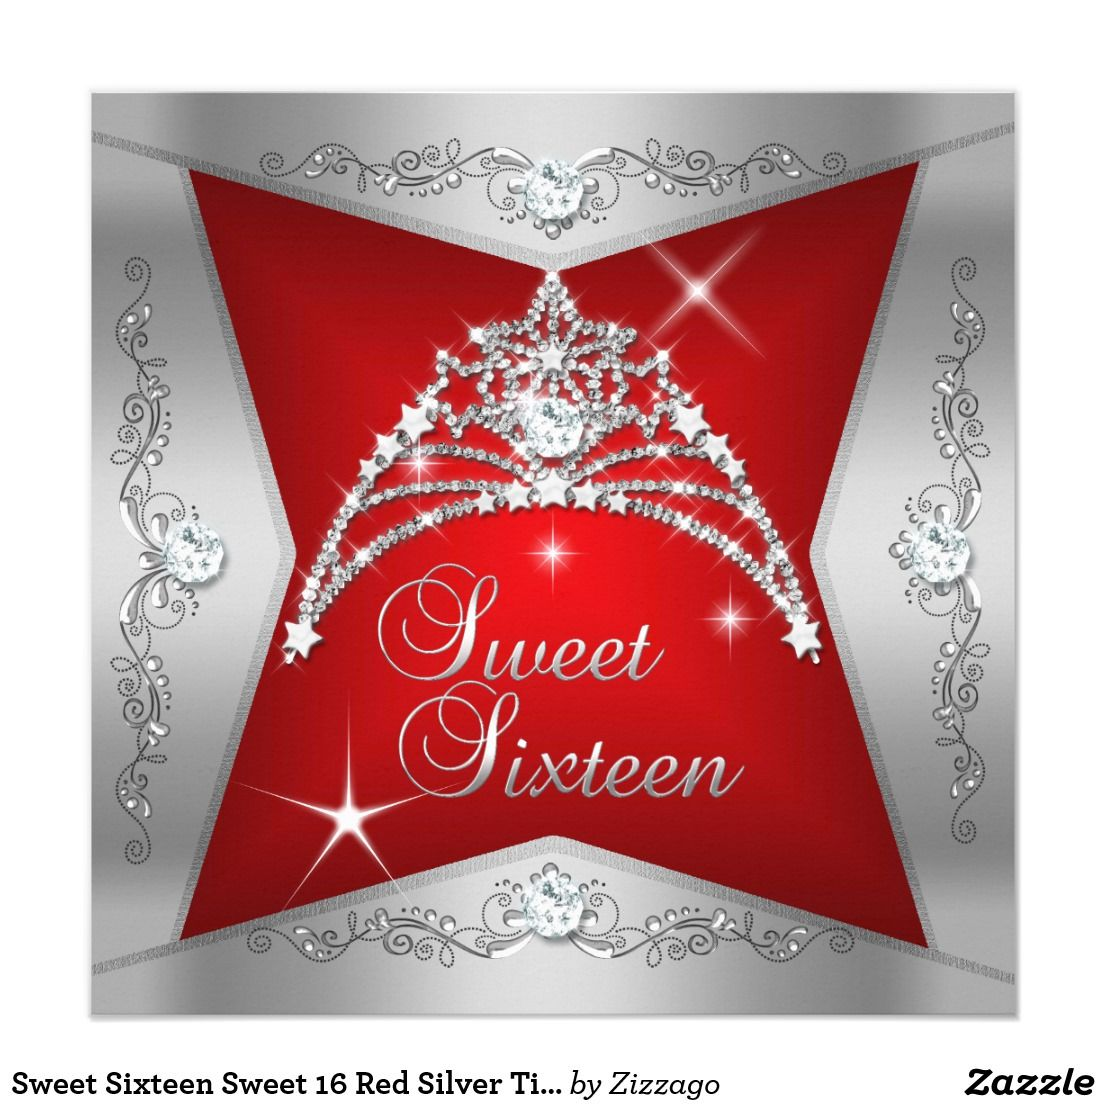 Sweet Sixteen Sweet 16 Red Silver Tiara Invitation Zazzle